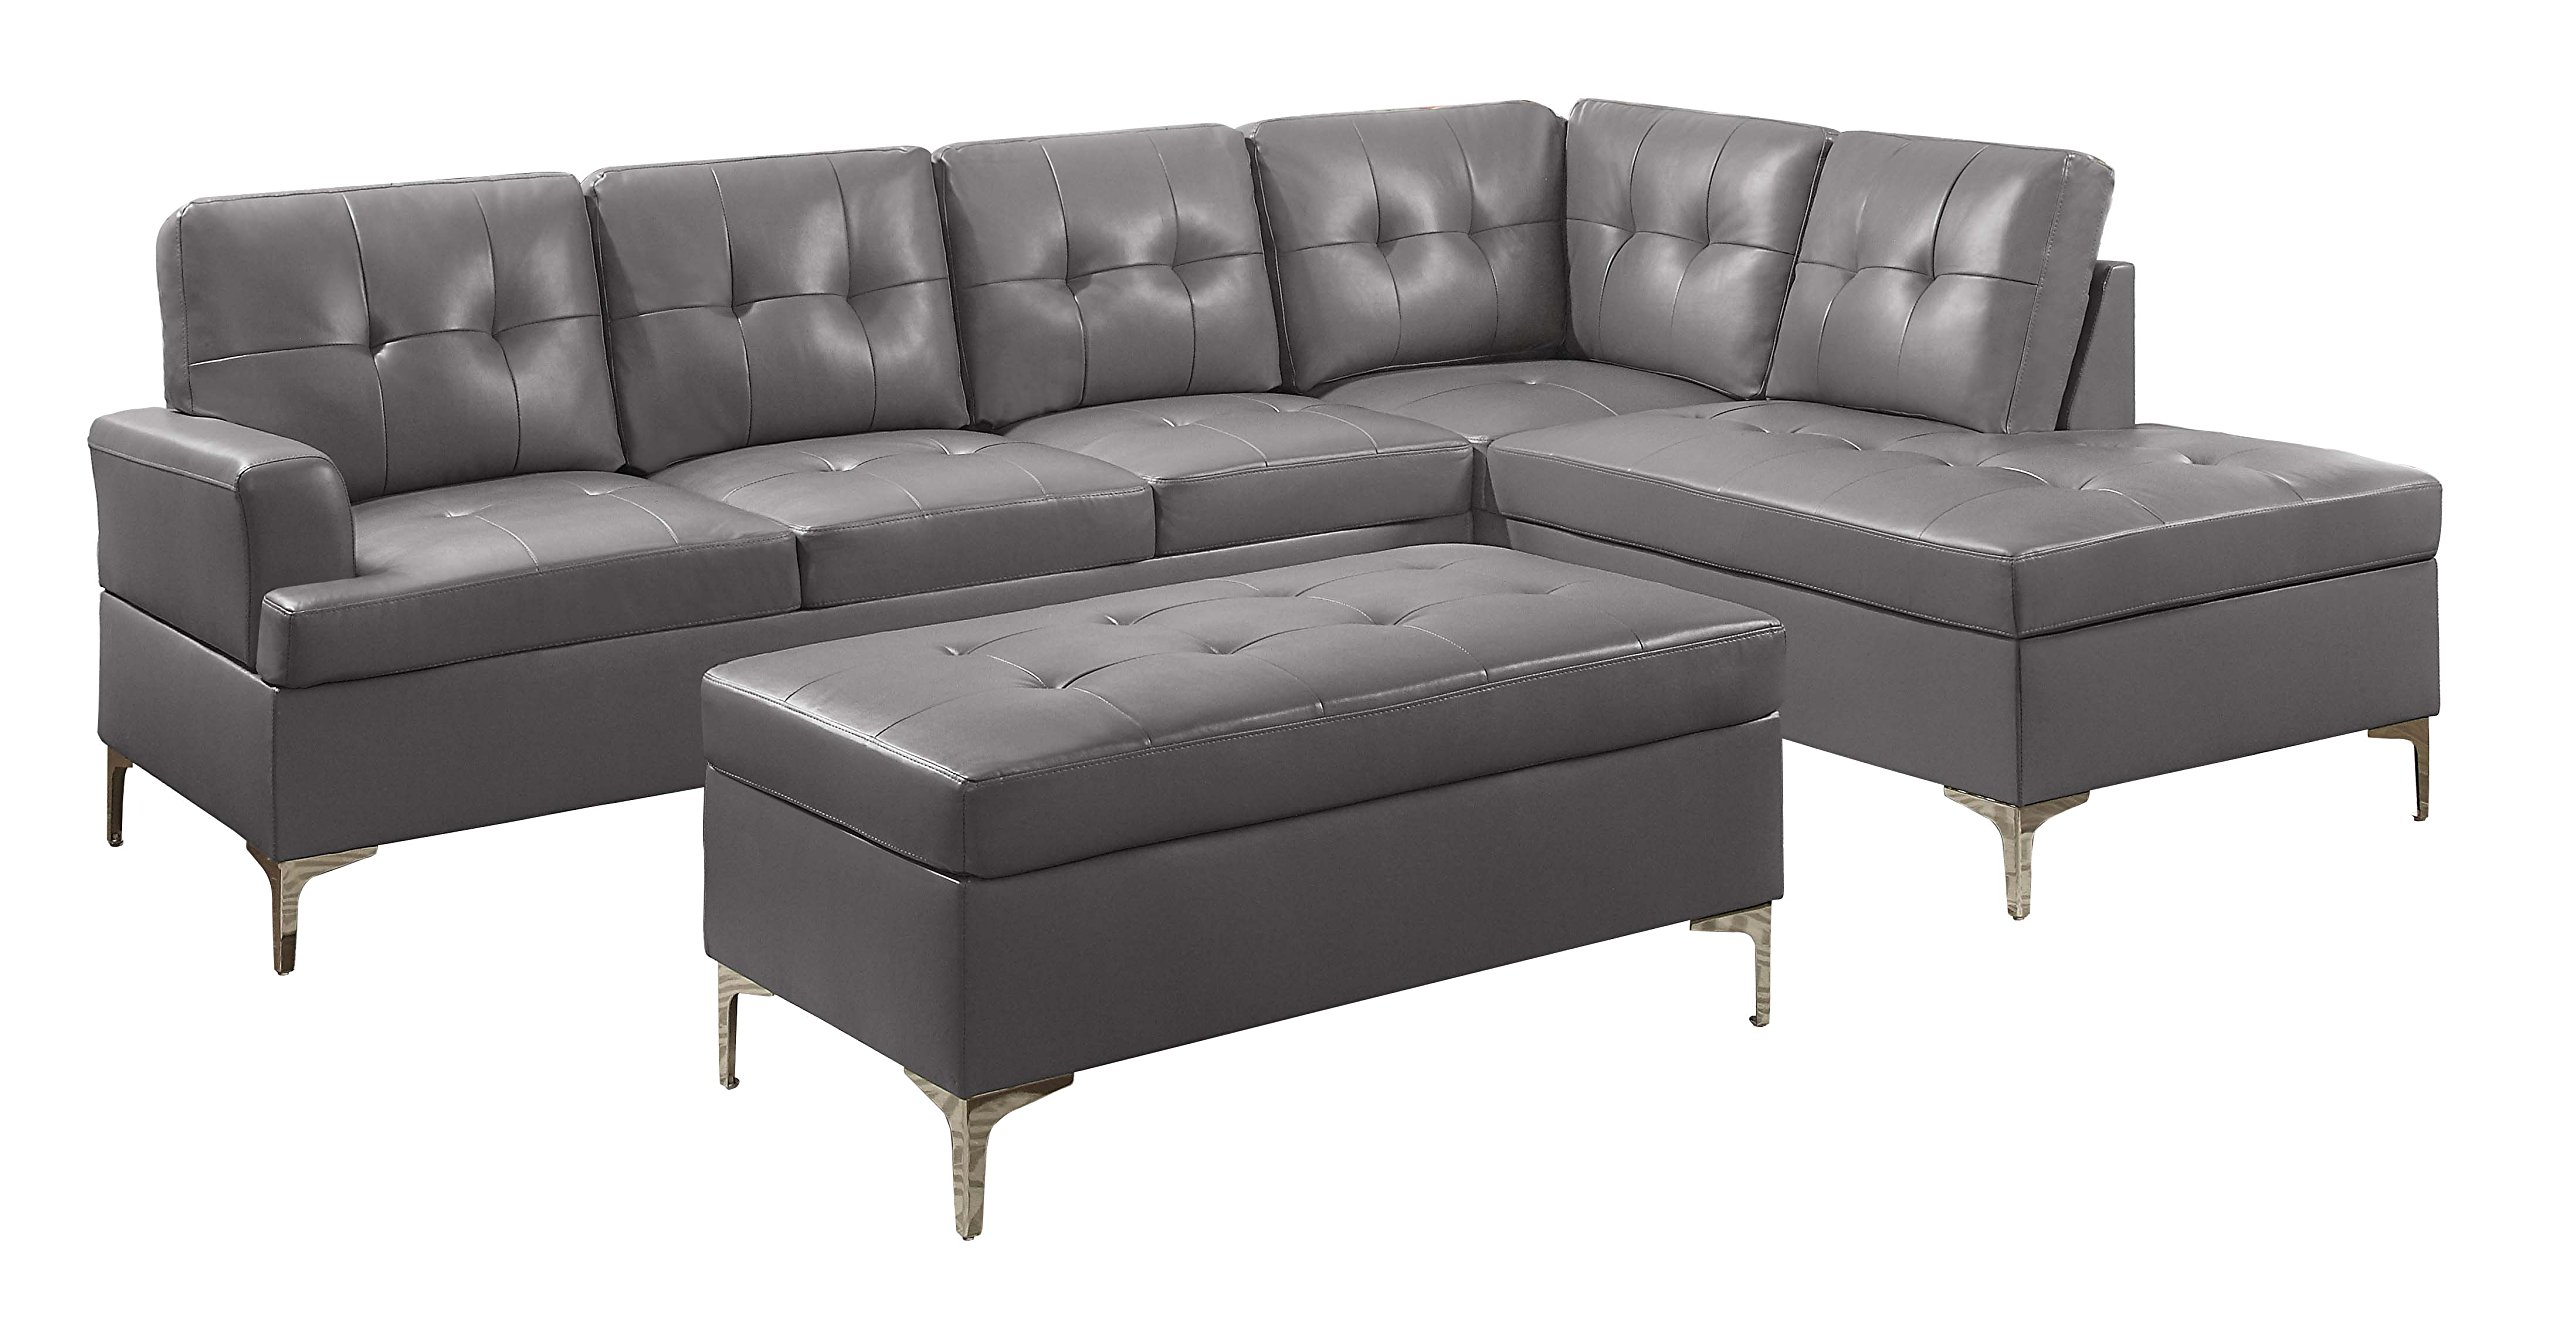 Cheap Two Piece Sectional Sofa Find Two Piece Sectional Sofa Deals